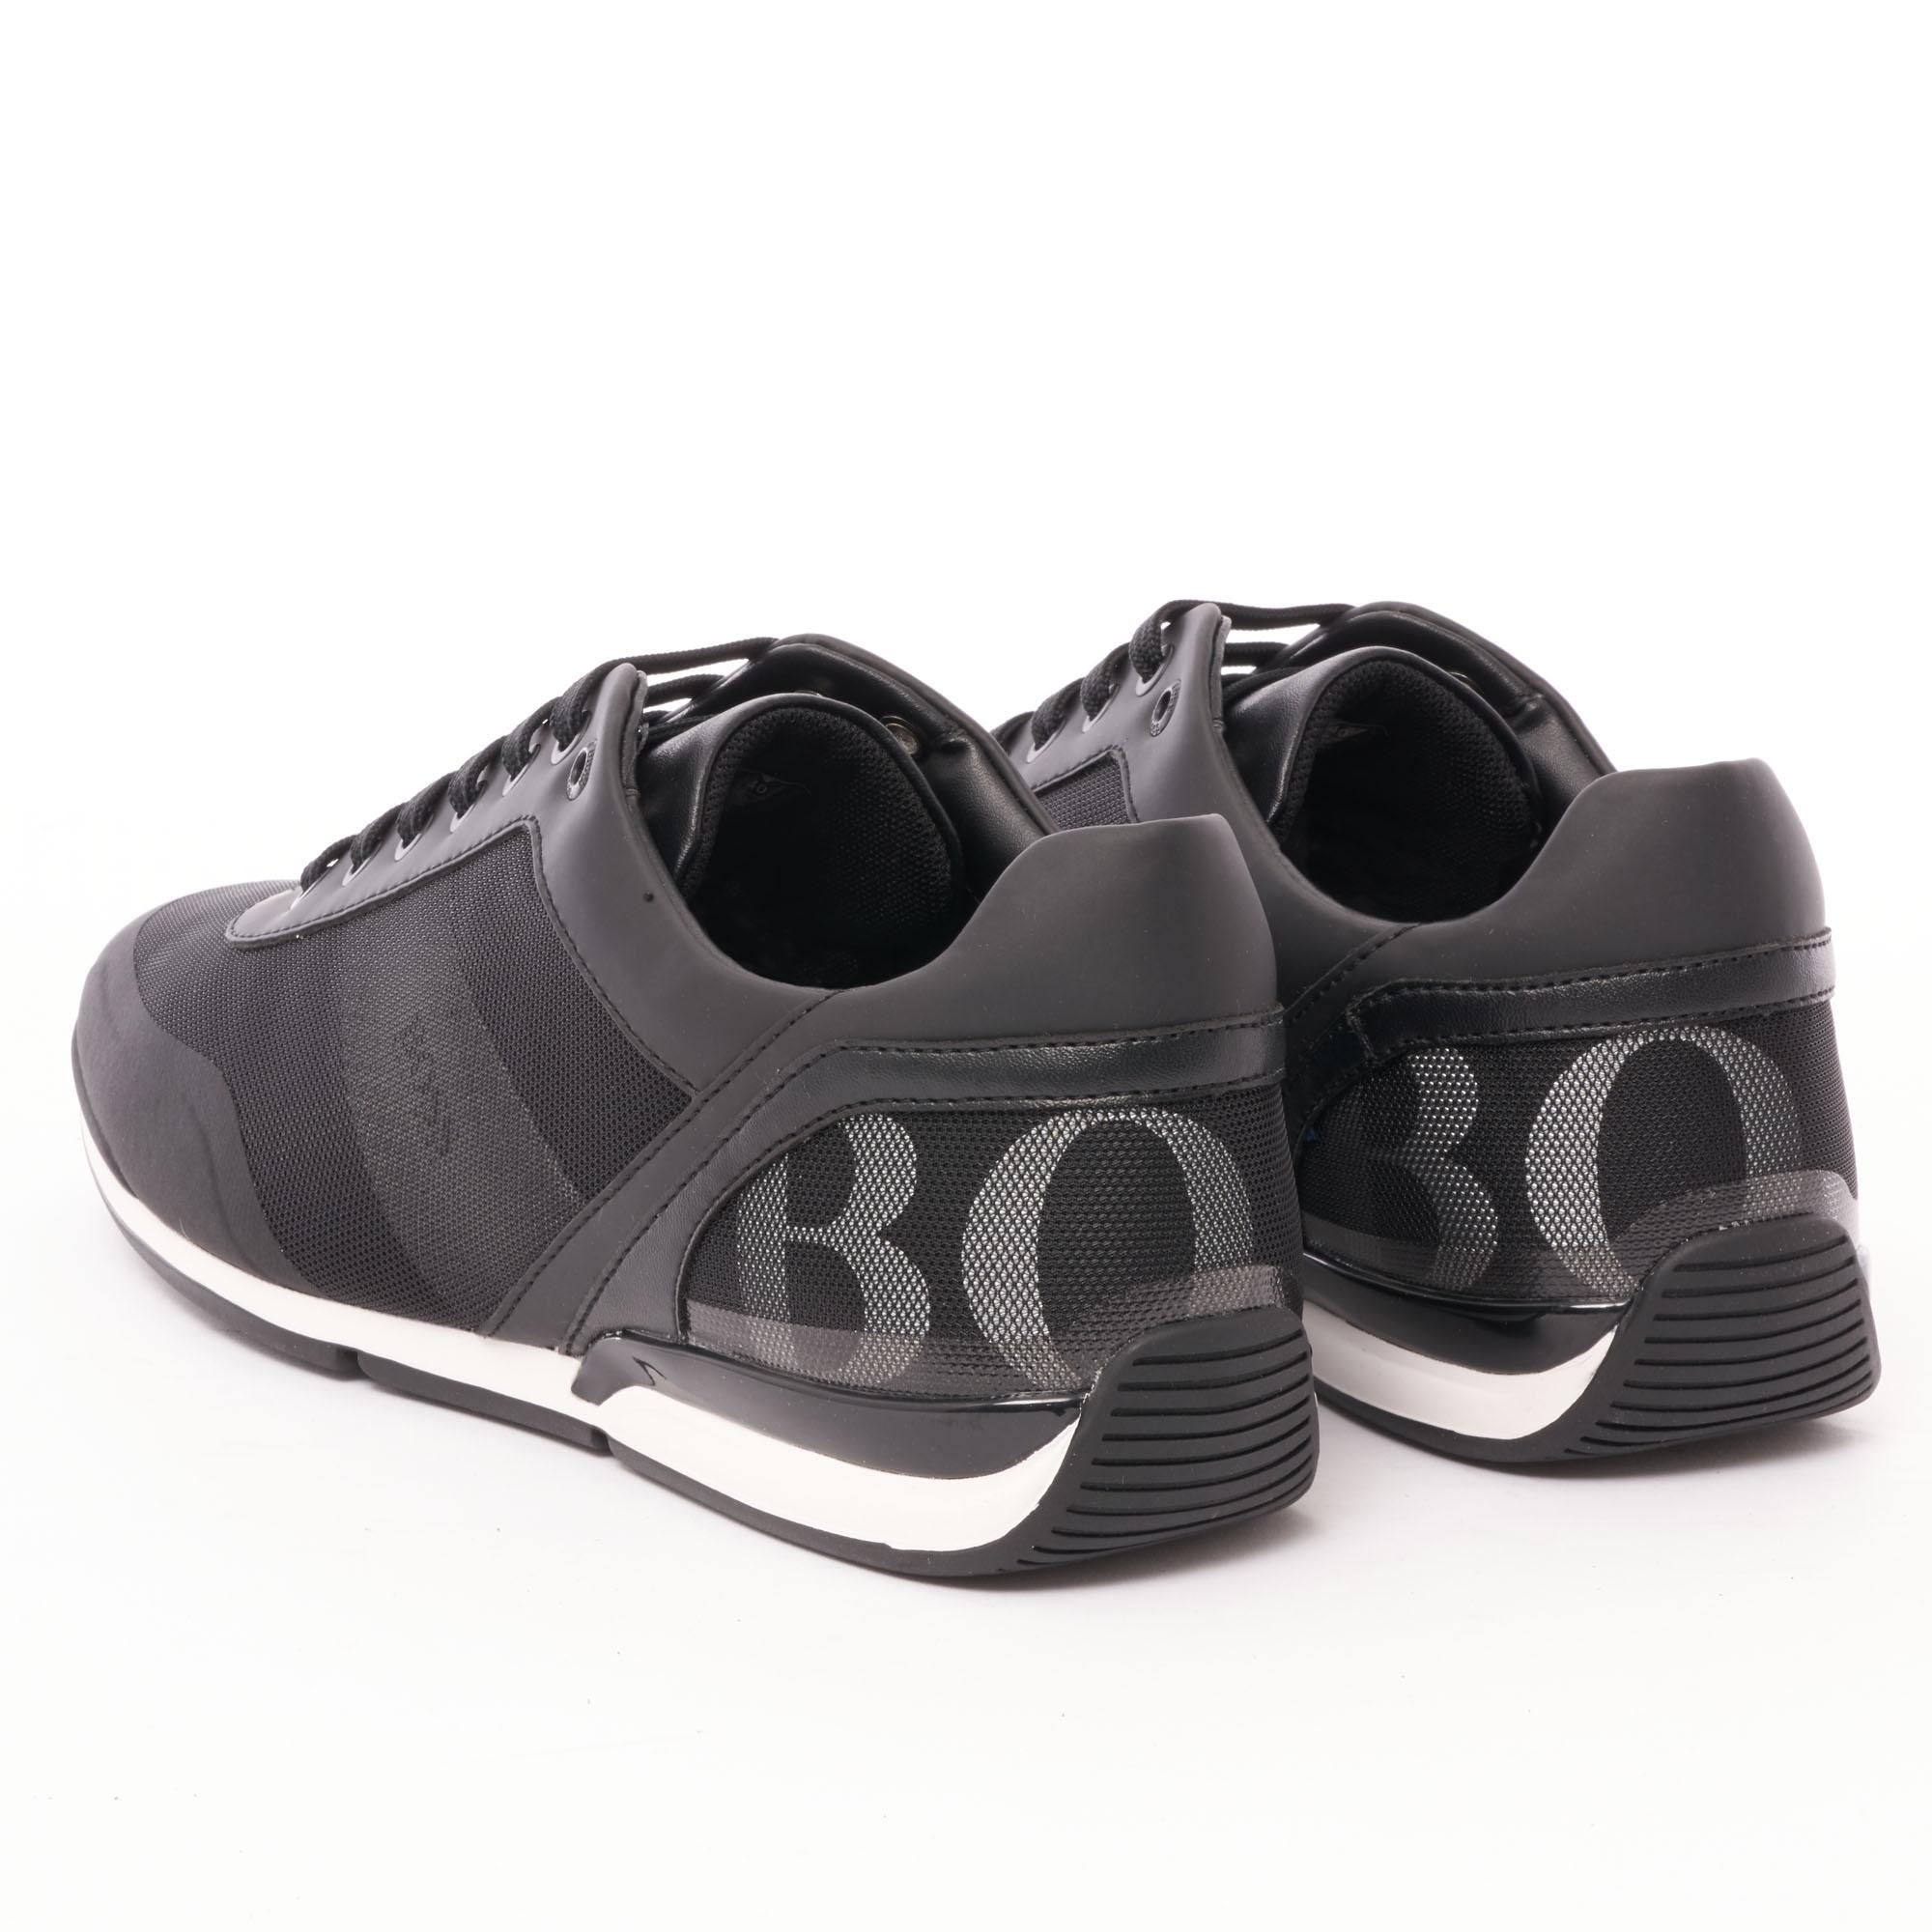 latest novel style look out for Saturn Low Act 3 Sneakers - Black